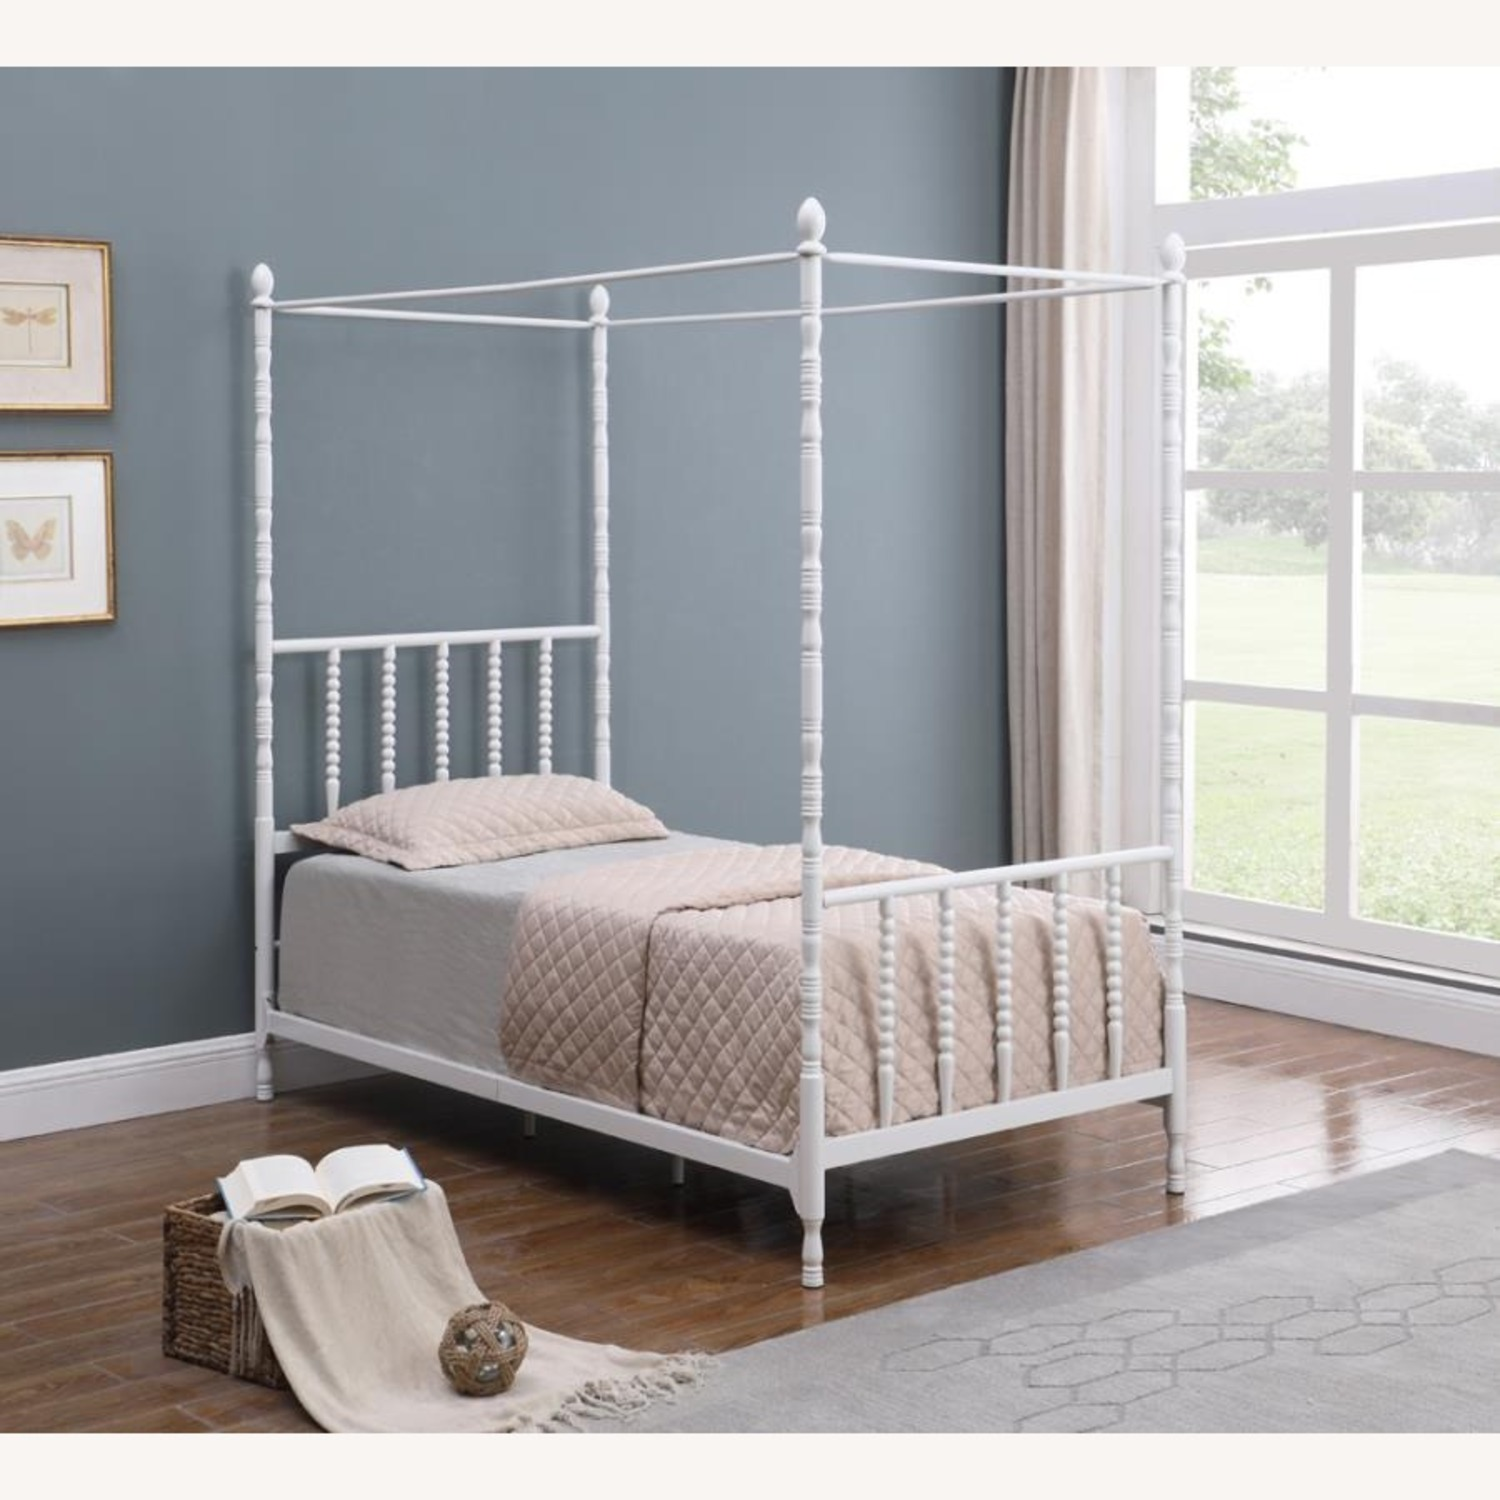 Modern Twin Canopy Bed In White Finish - image-2